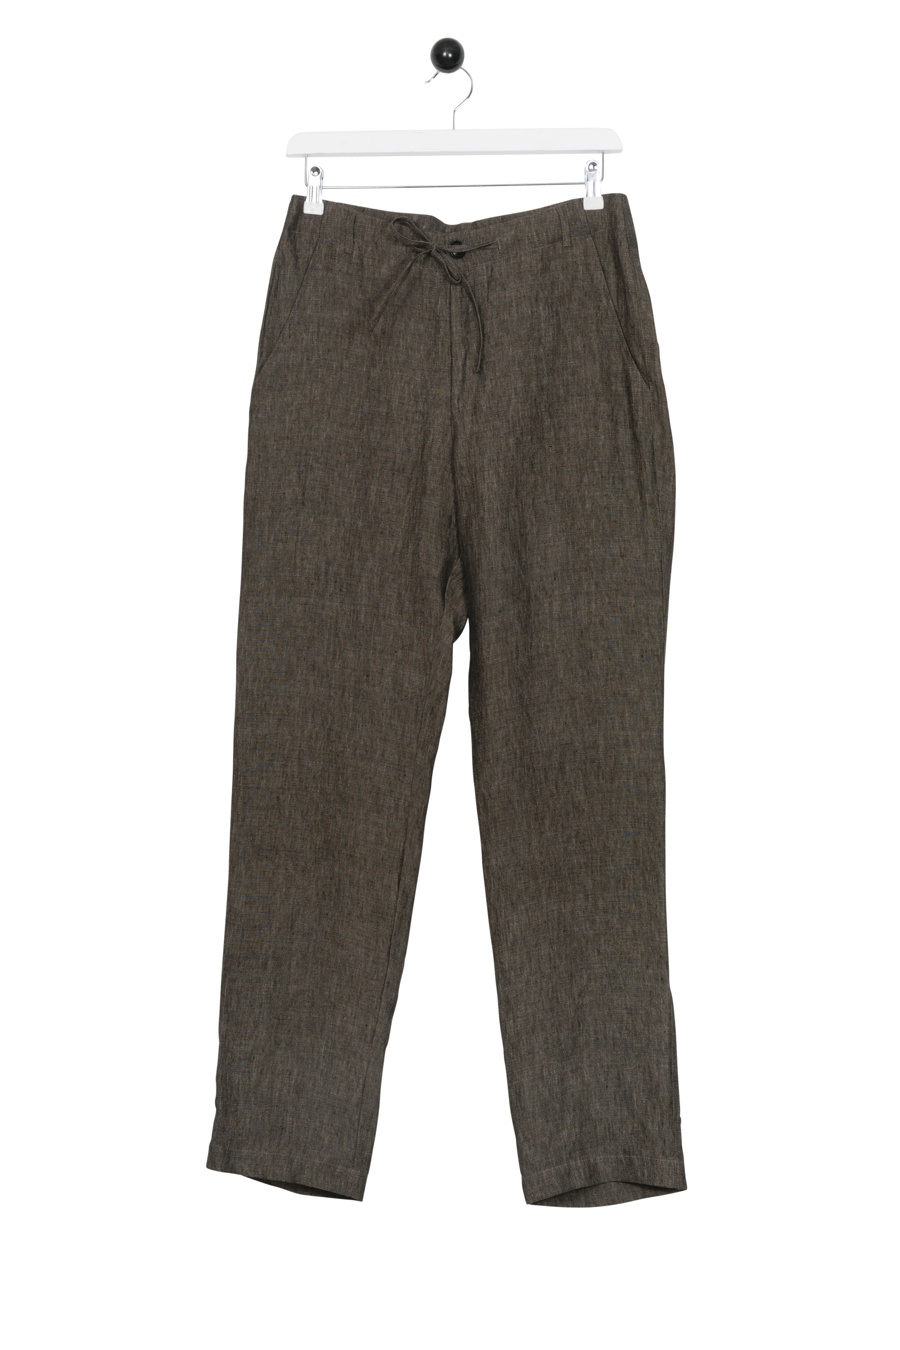 Rochefort Trousers